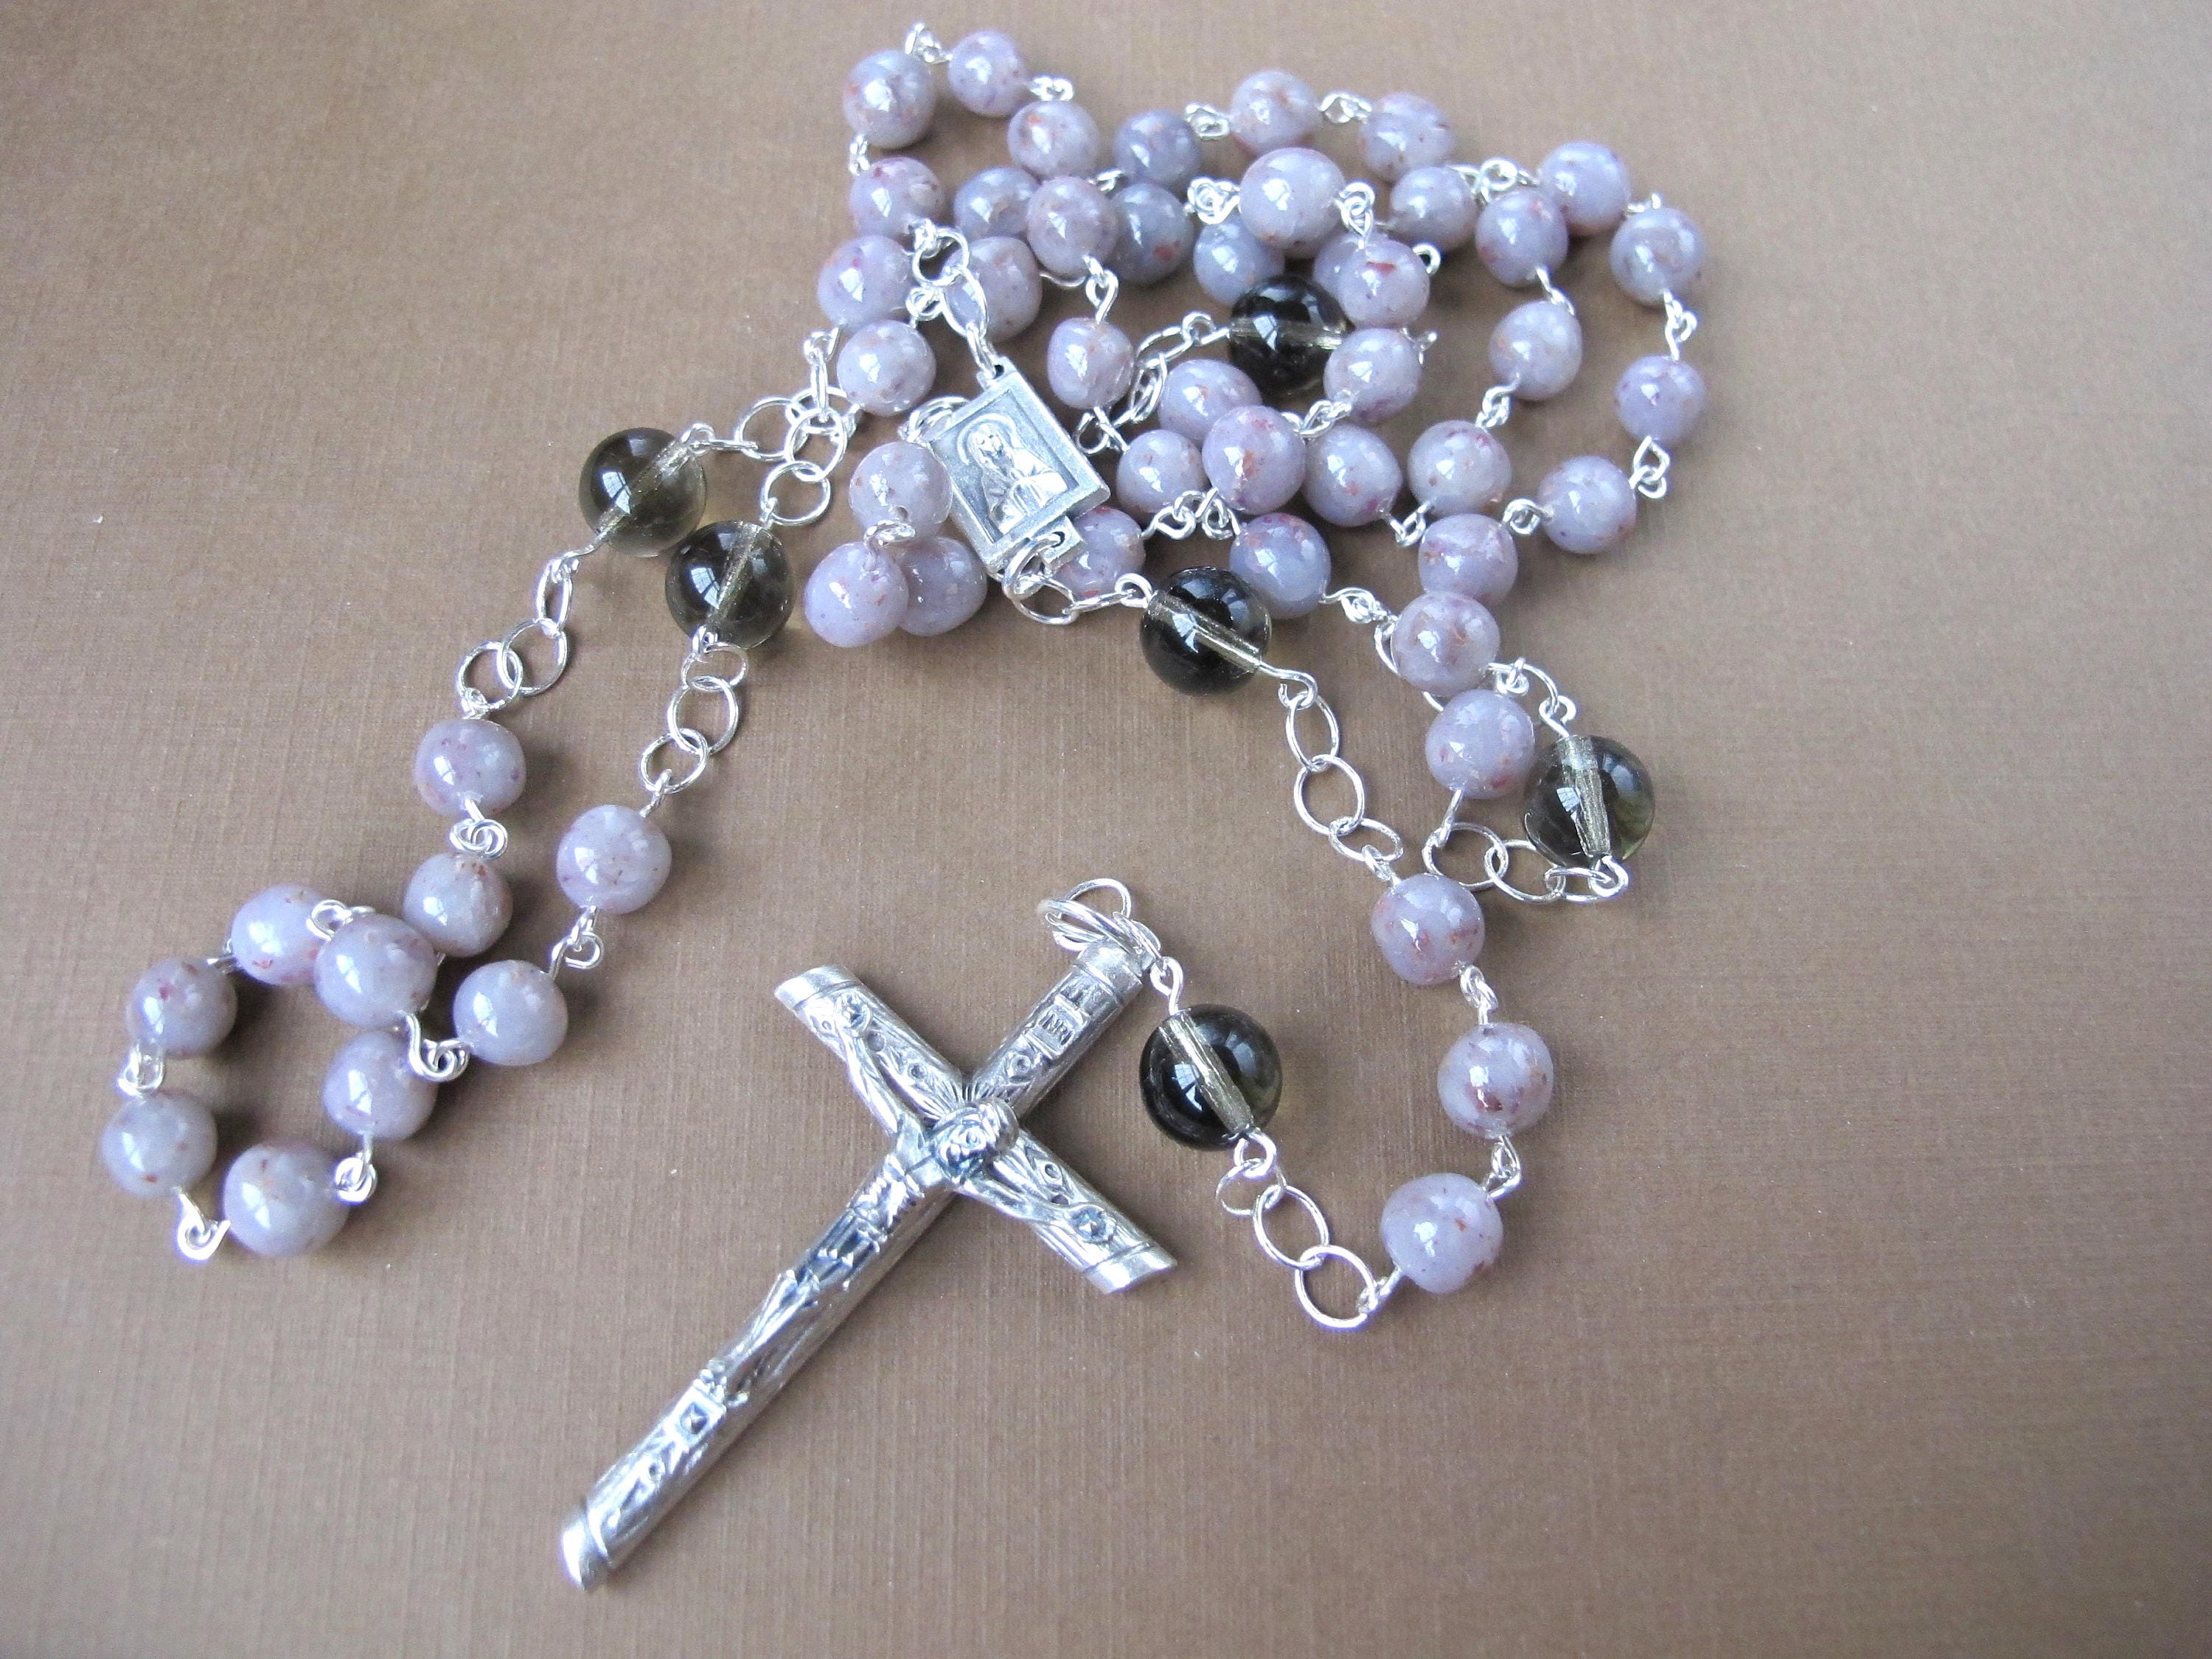 Rosary made from funeral flowers images flower wallpaper hd rosary beads made from funeral flowers image collections flower rosary beads made from funeral flowers gallery izmirmasajfo